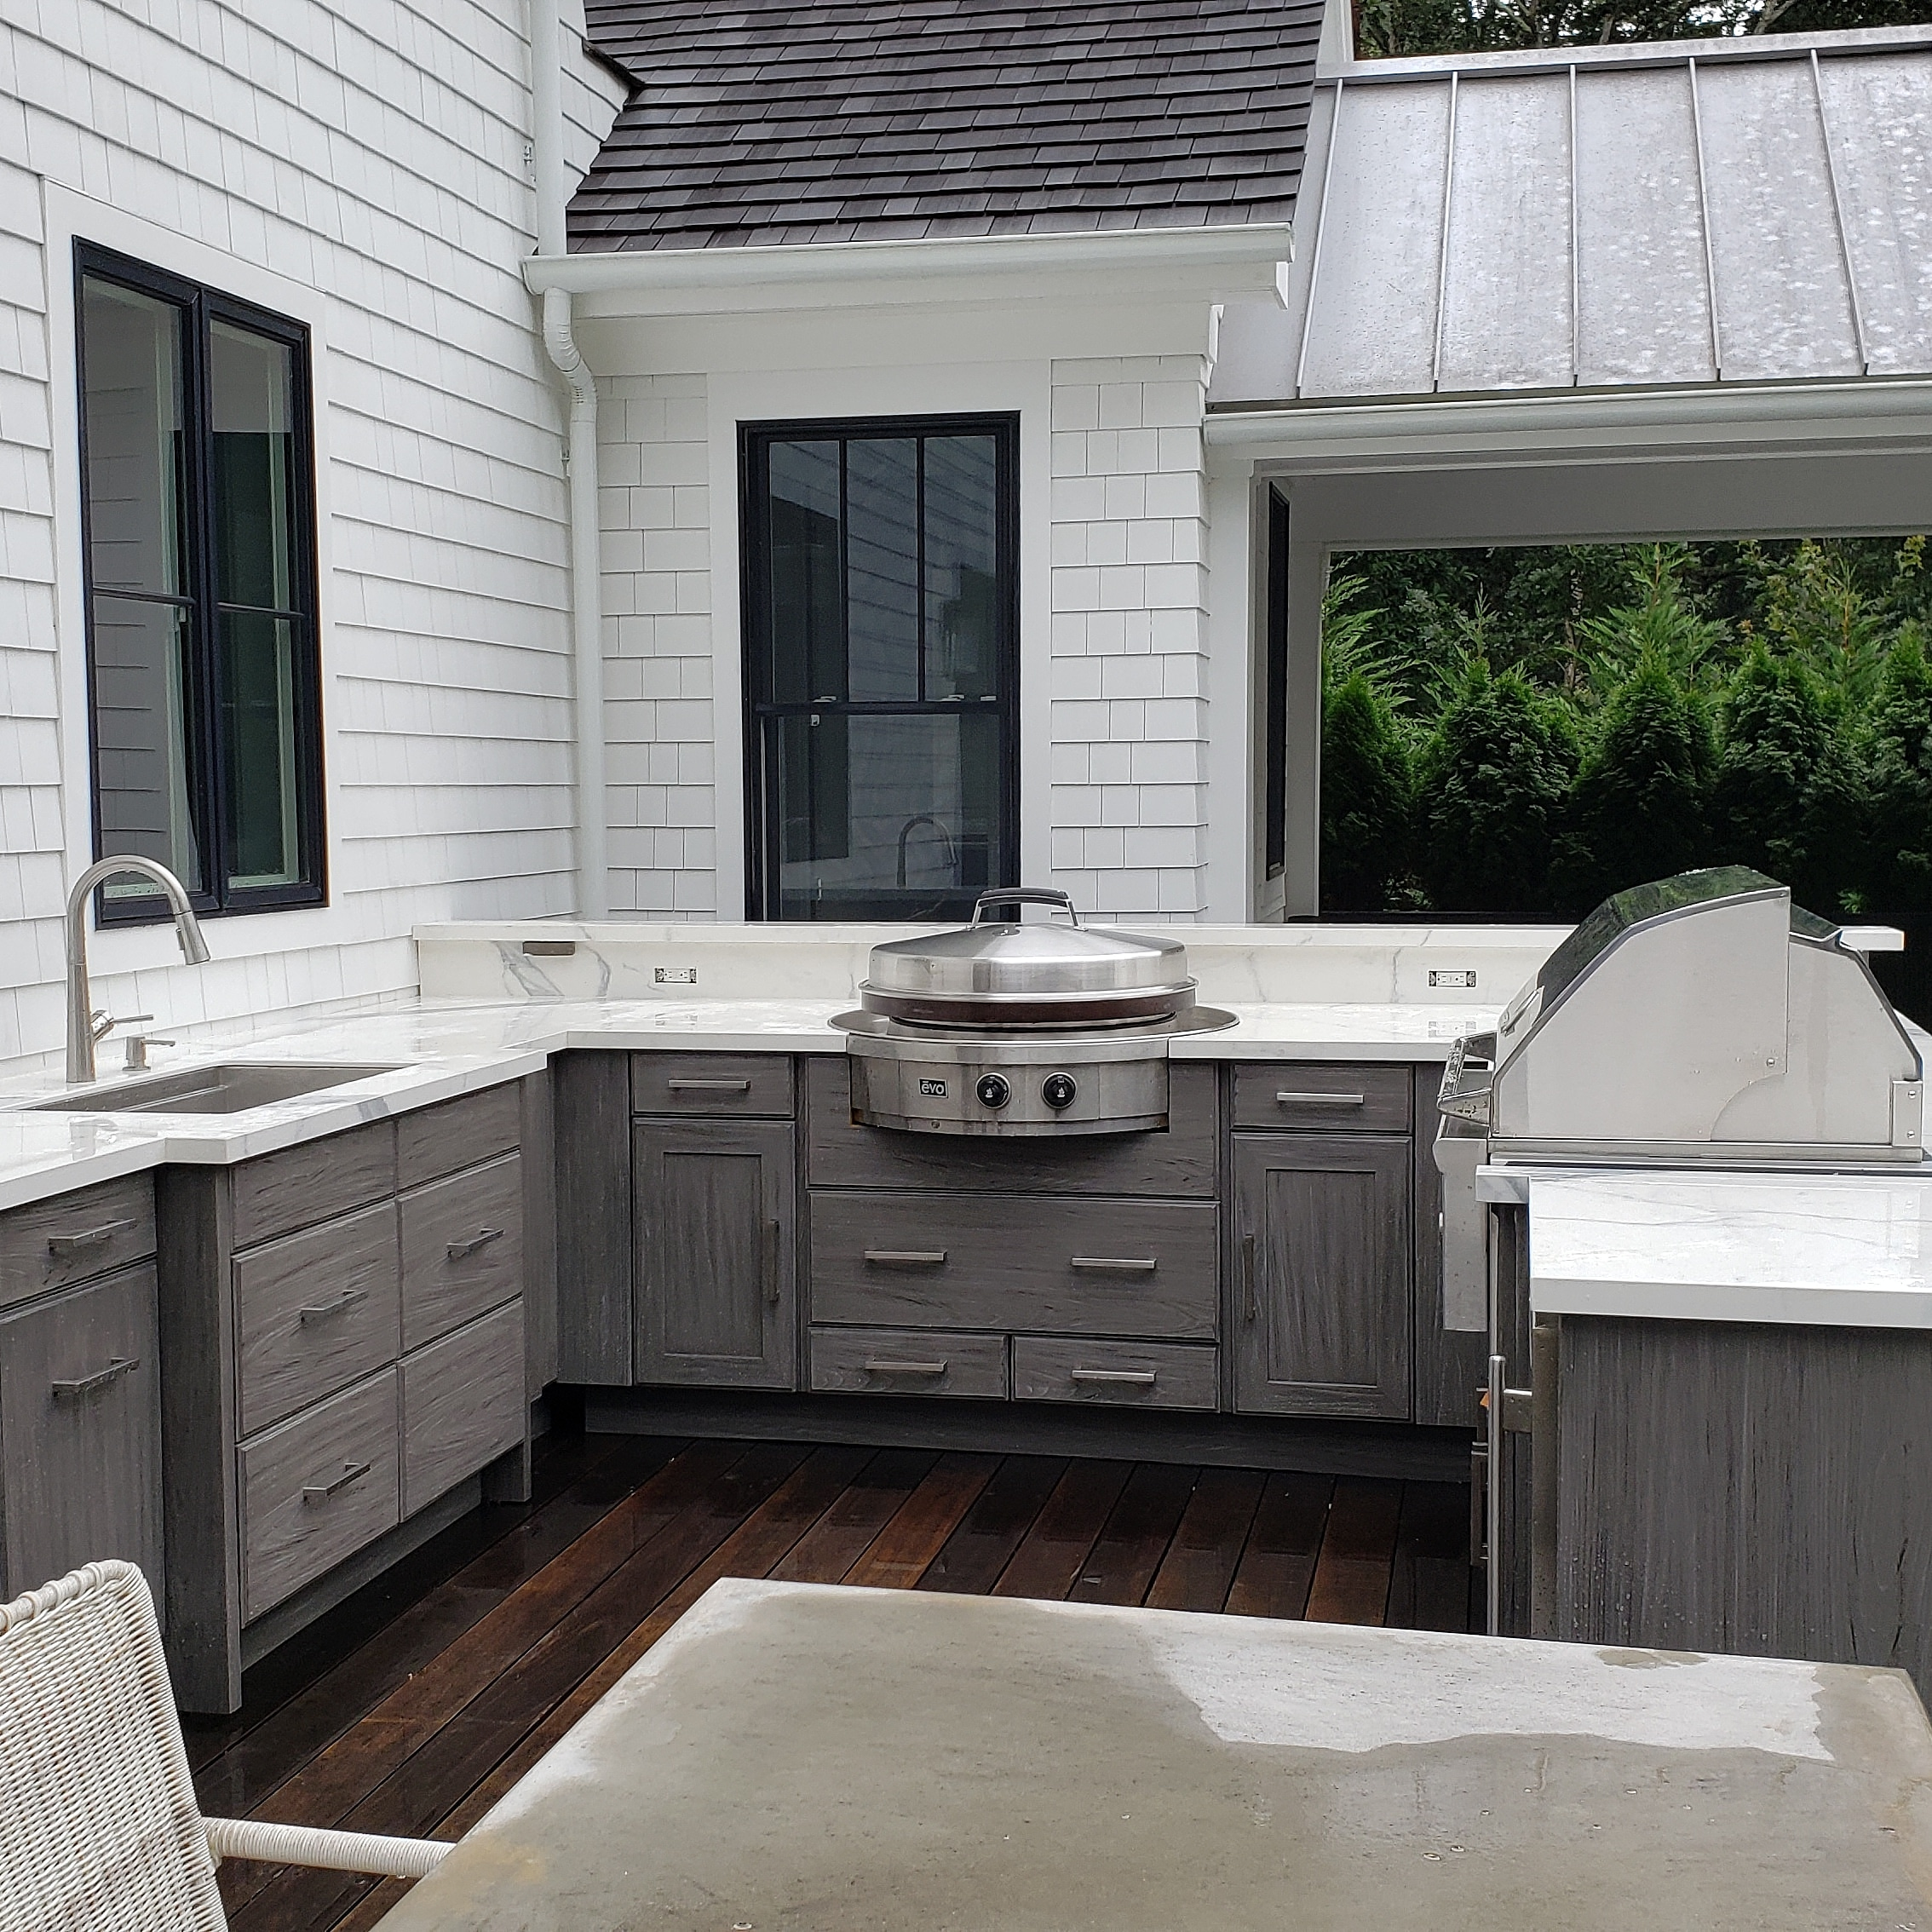 OUTDOOR KITCHENS CONTINUE TO BE FABULOUS IN THE HAMPTONS